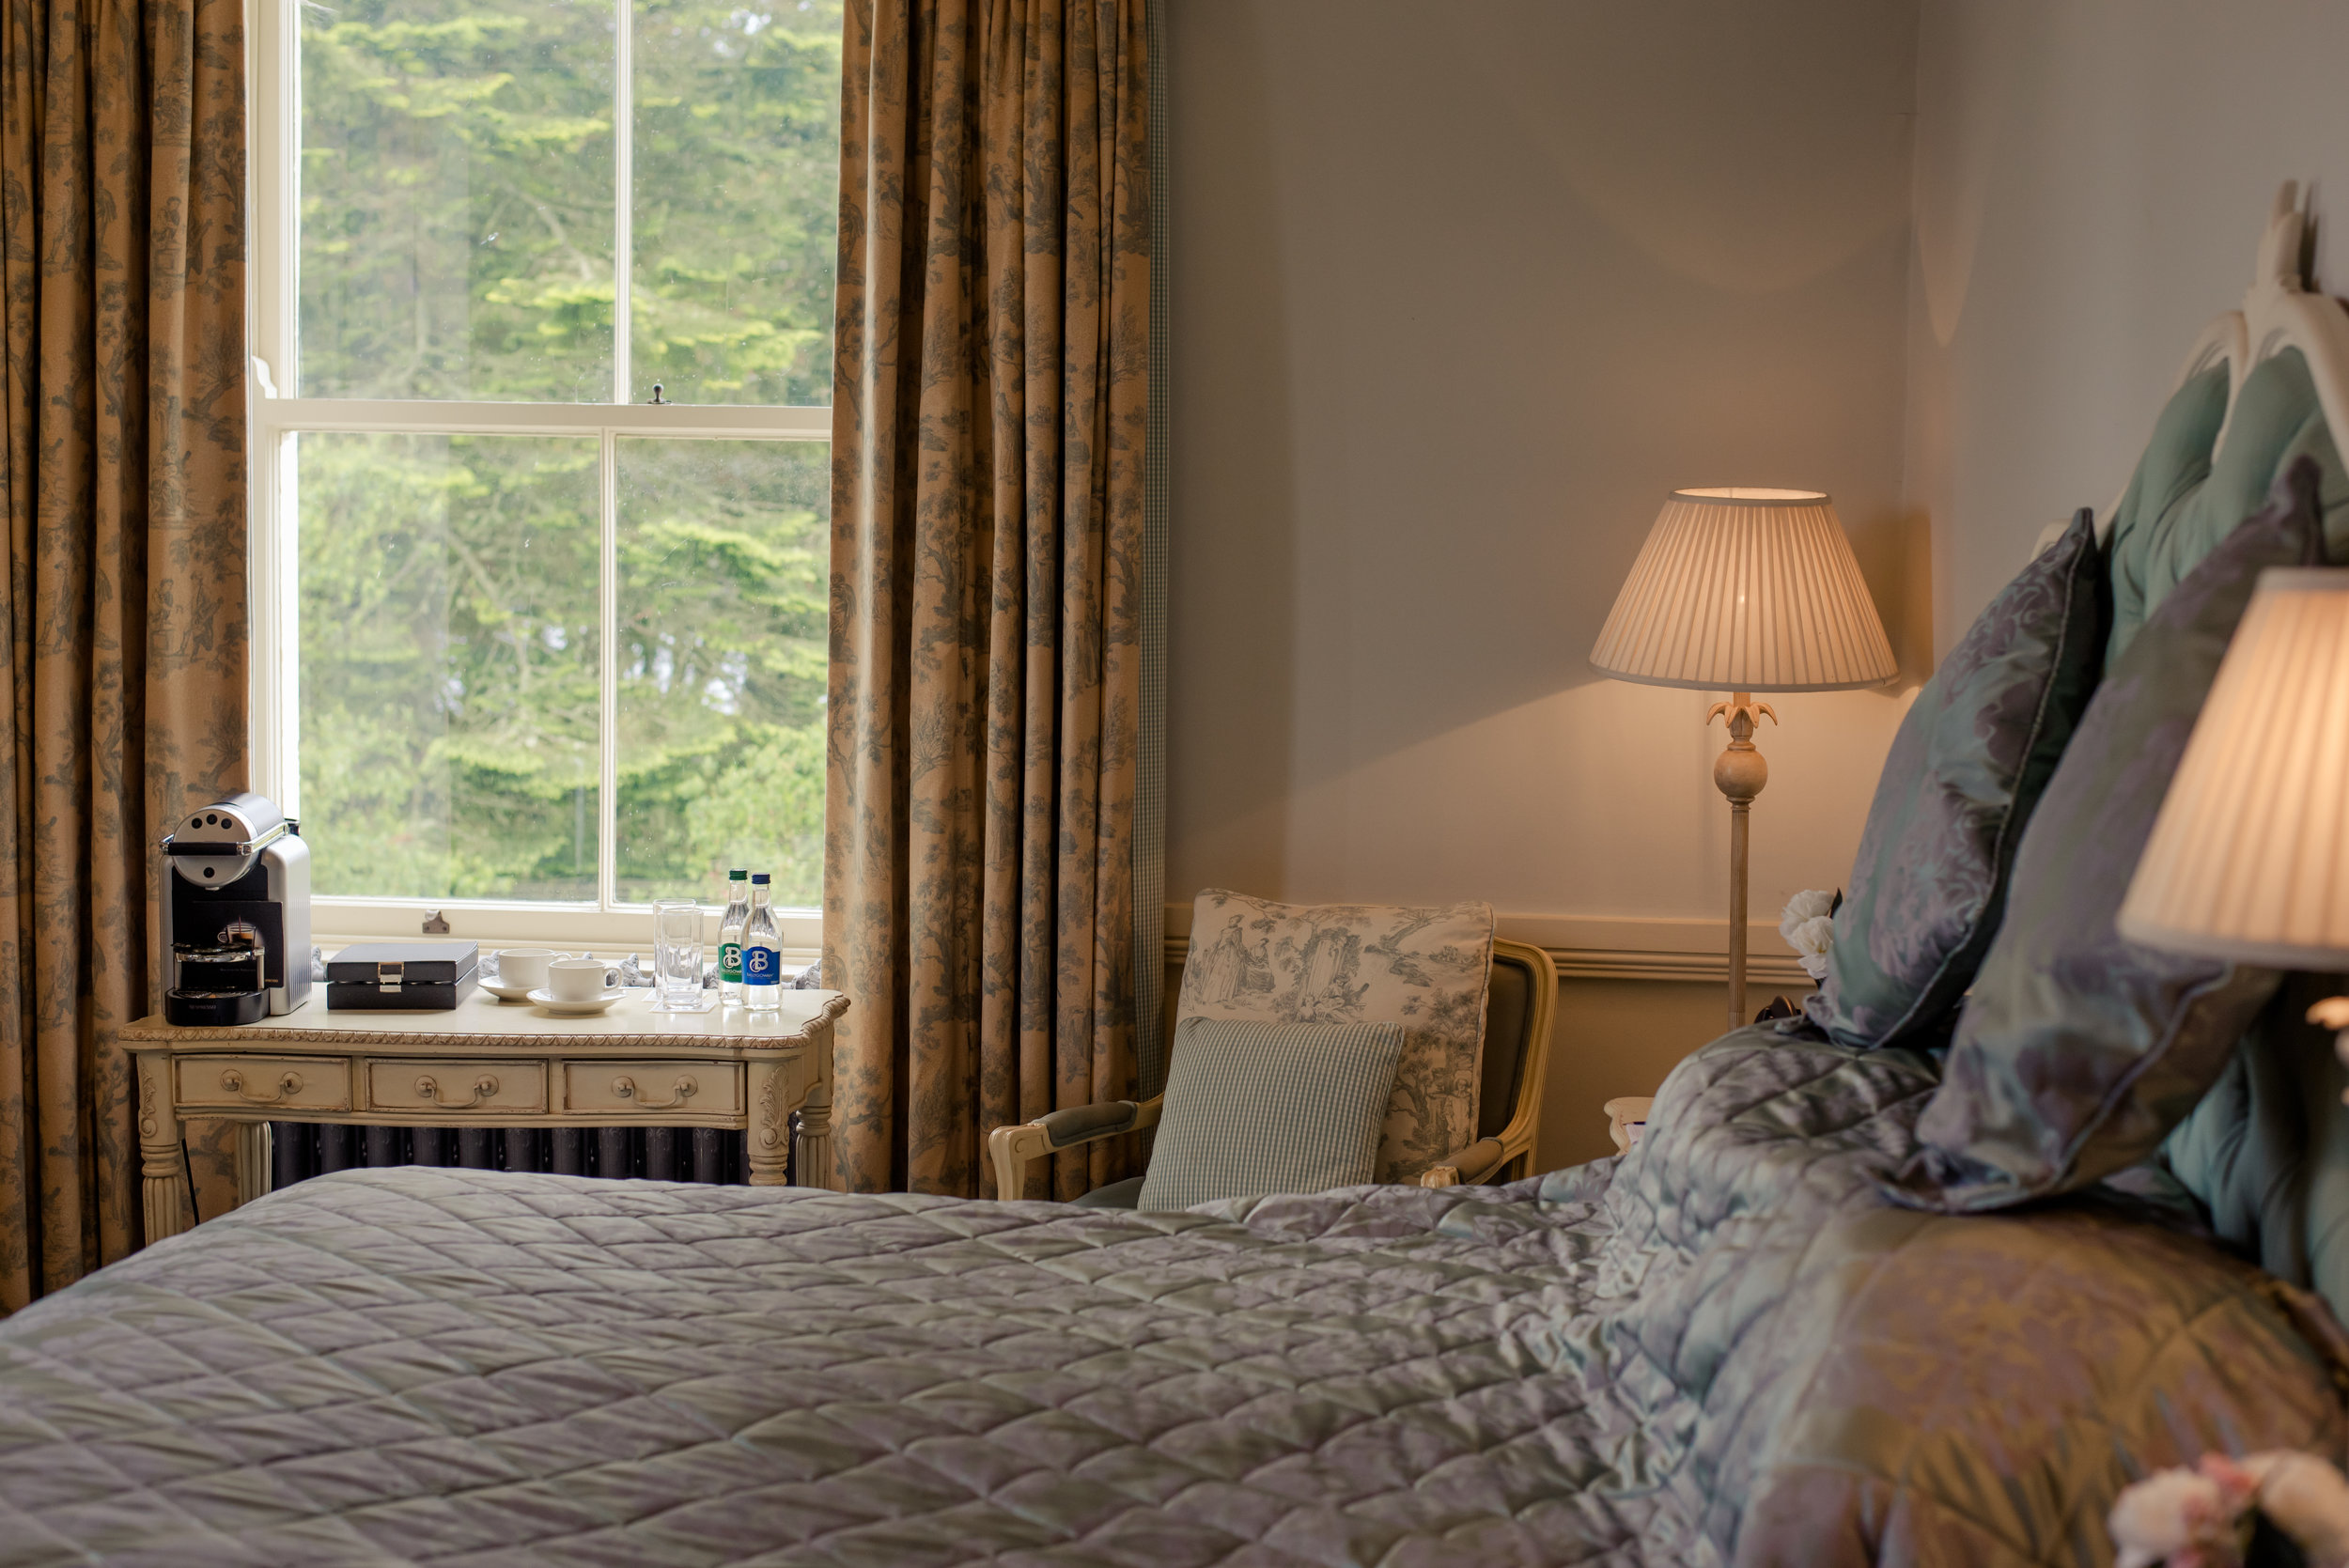 Tulfarris Hotel & Golf Resort Manor House bedroom with bedise lamps and beautiful window view.jpg